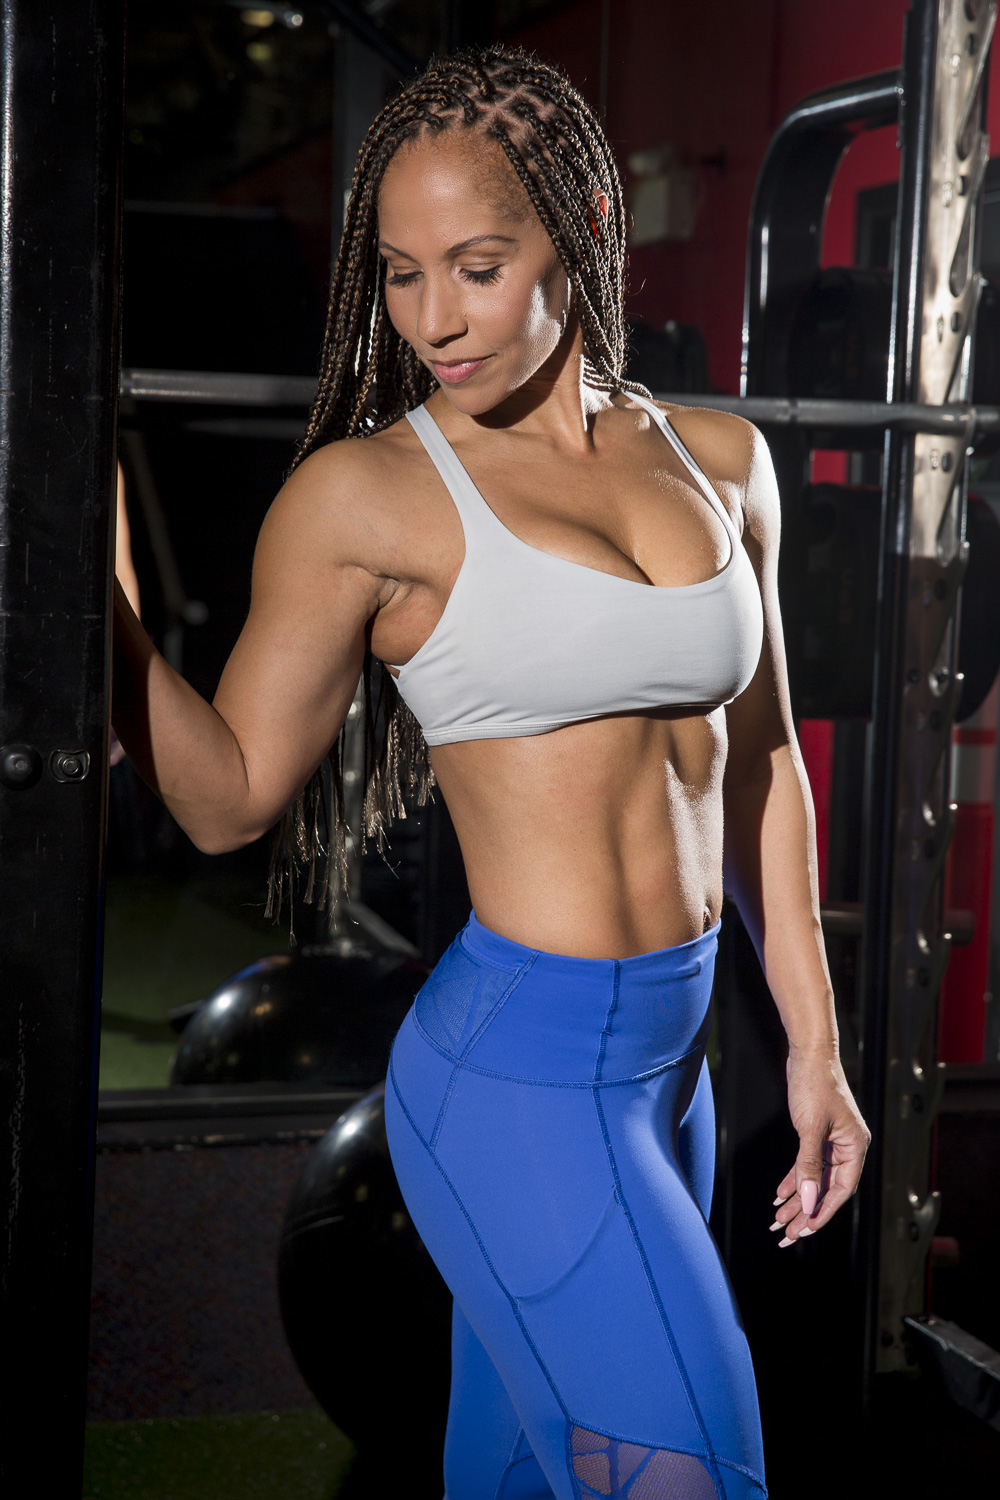 Vancouver Fitness Photographer - Fitness is my Forte (2 of 7).jpg